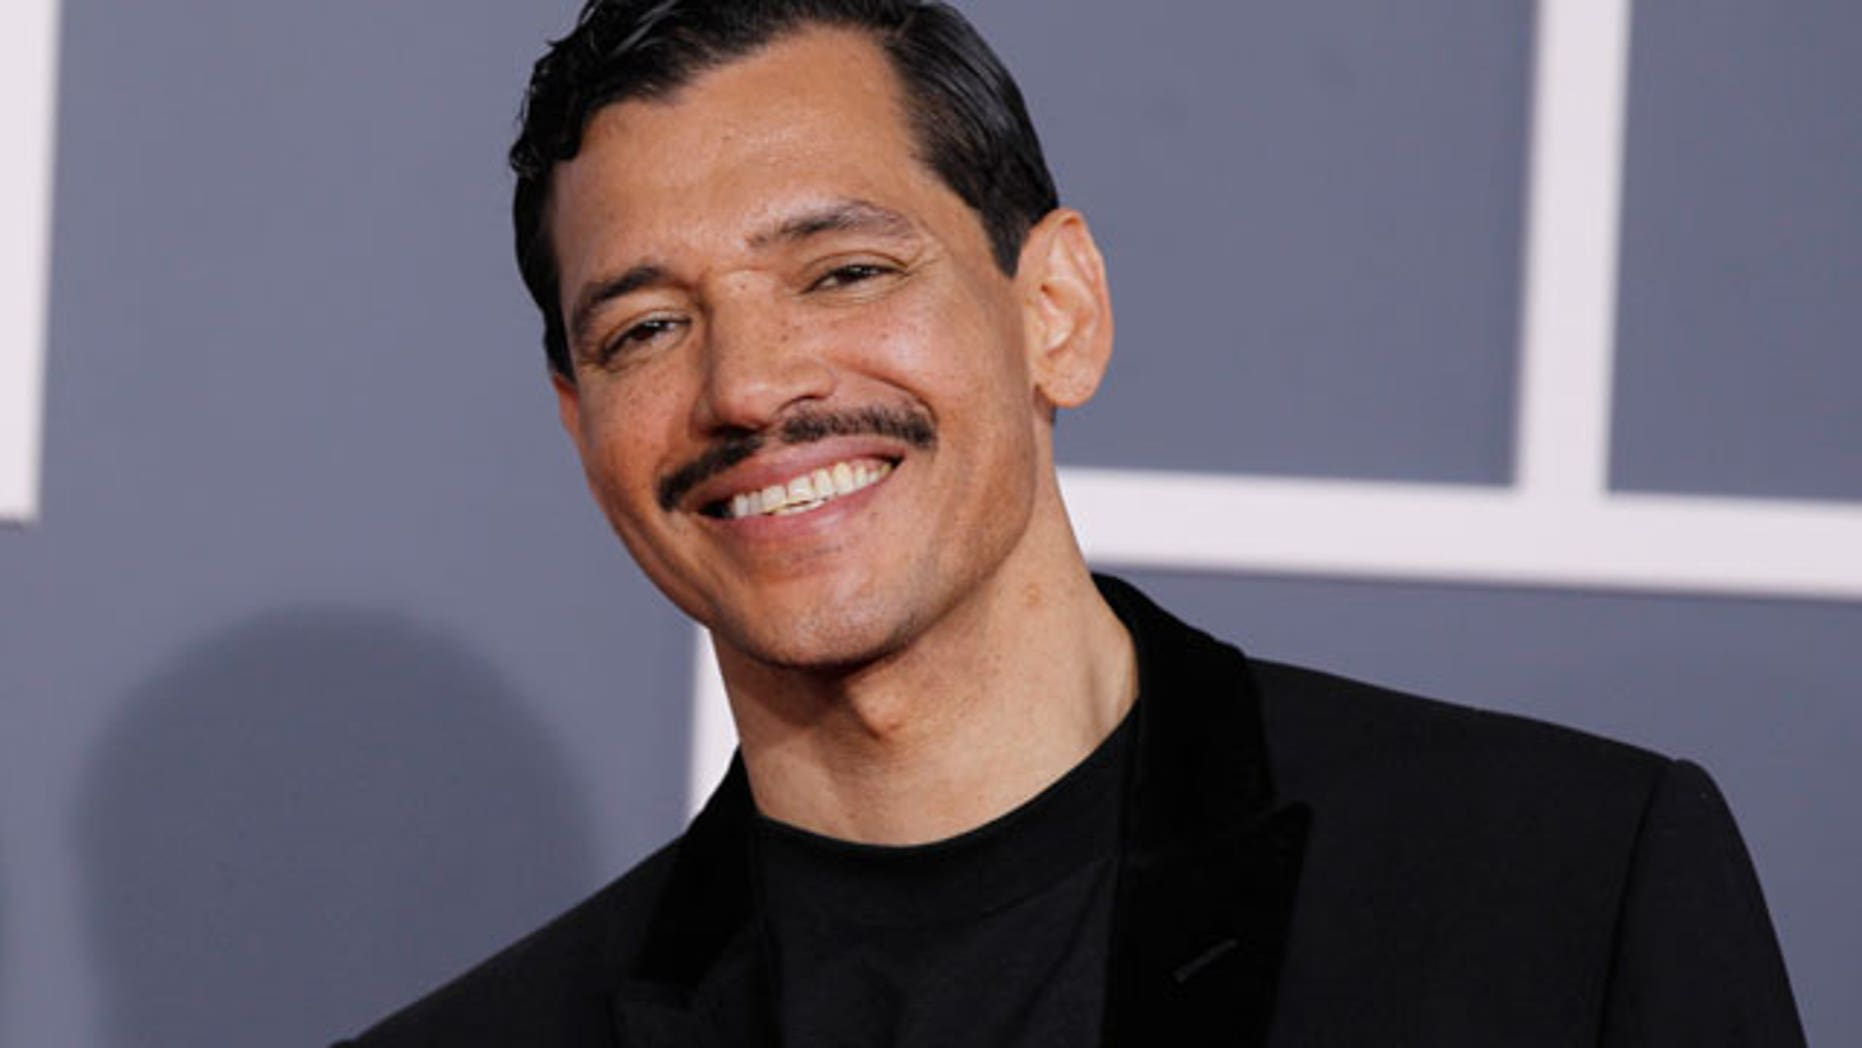 Feb. 13: Singer El Debarge arrives at the 54th annual Grammy Awards in Los Angeles, California. (REUTERS)